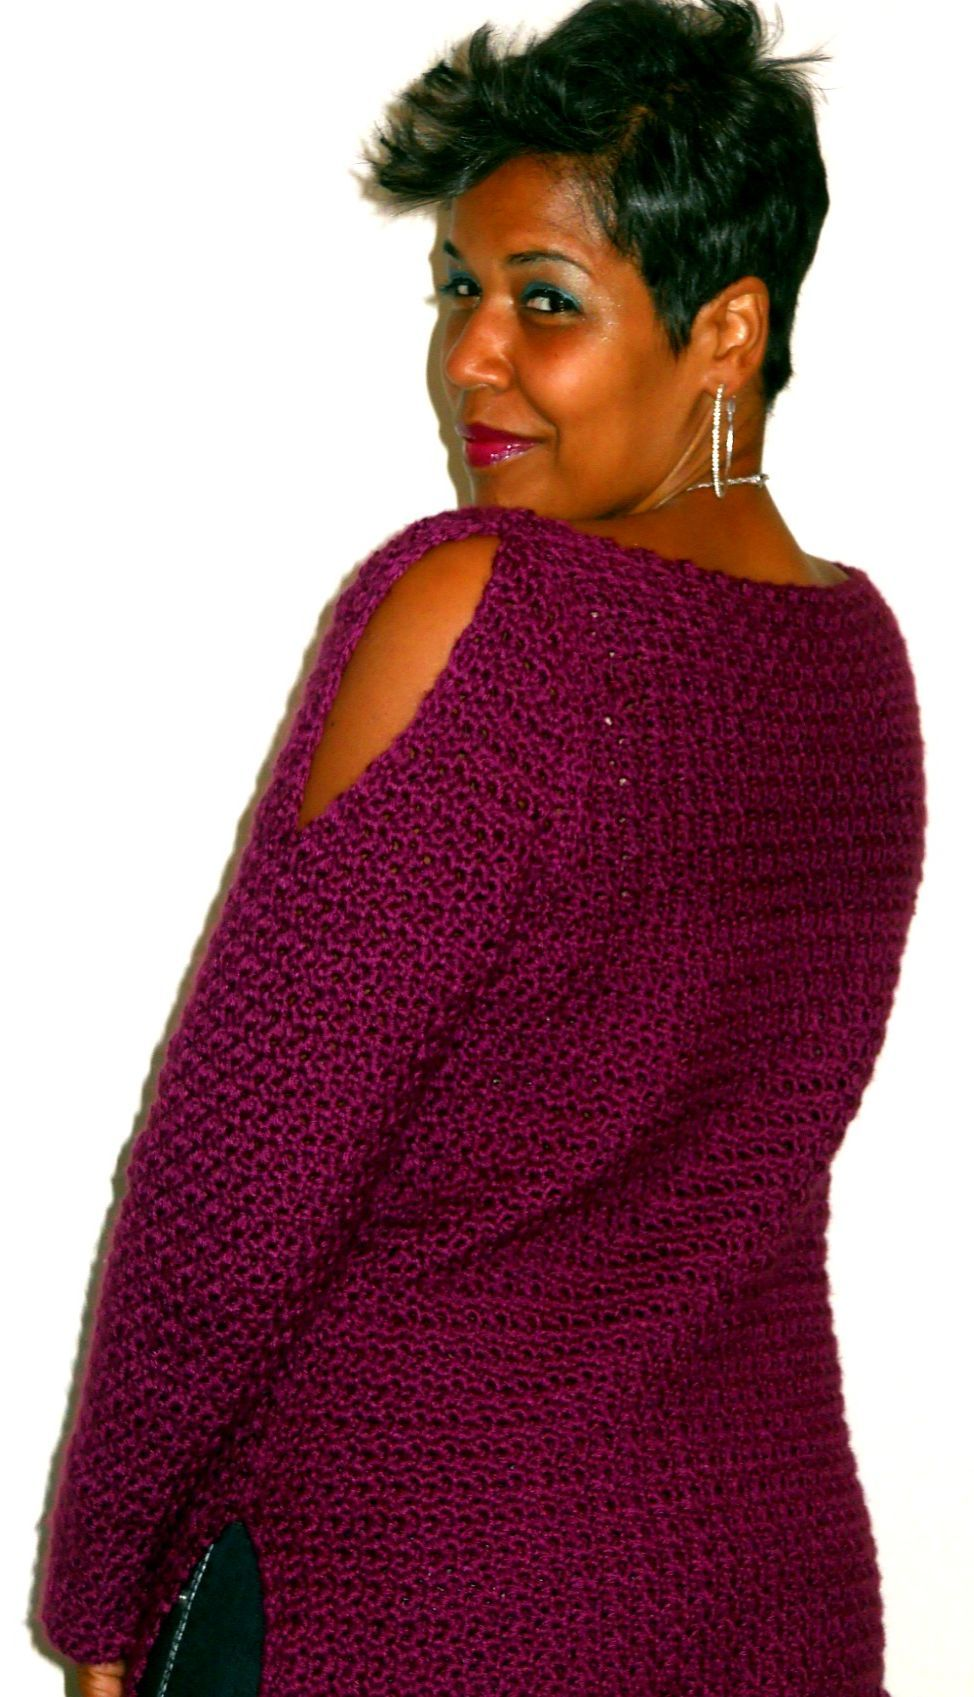 Oversized cowl neck tunic pattern by guchet crochet tunic crochet sweater pattern crochet tunic pattern easy crochet top pattern bankloansurffo Images